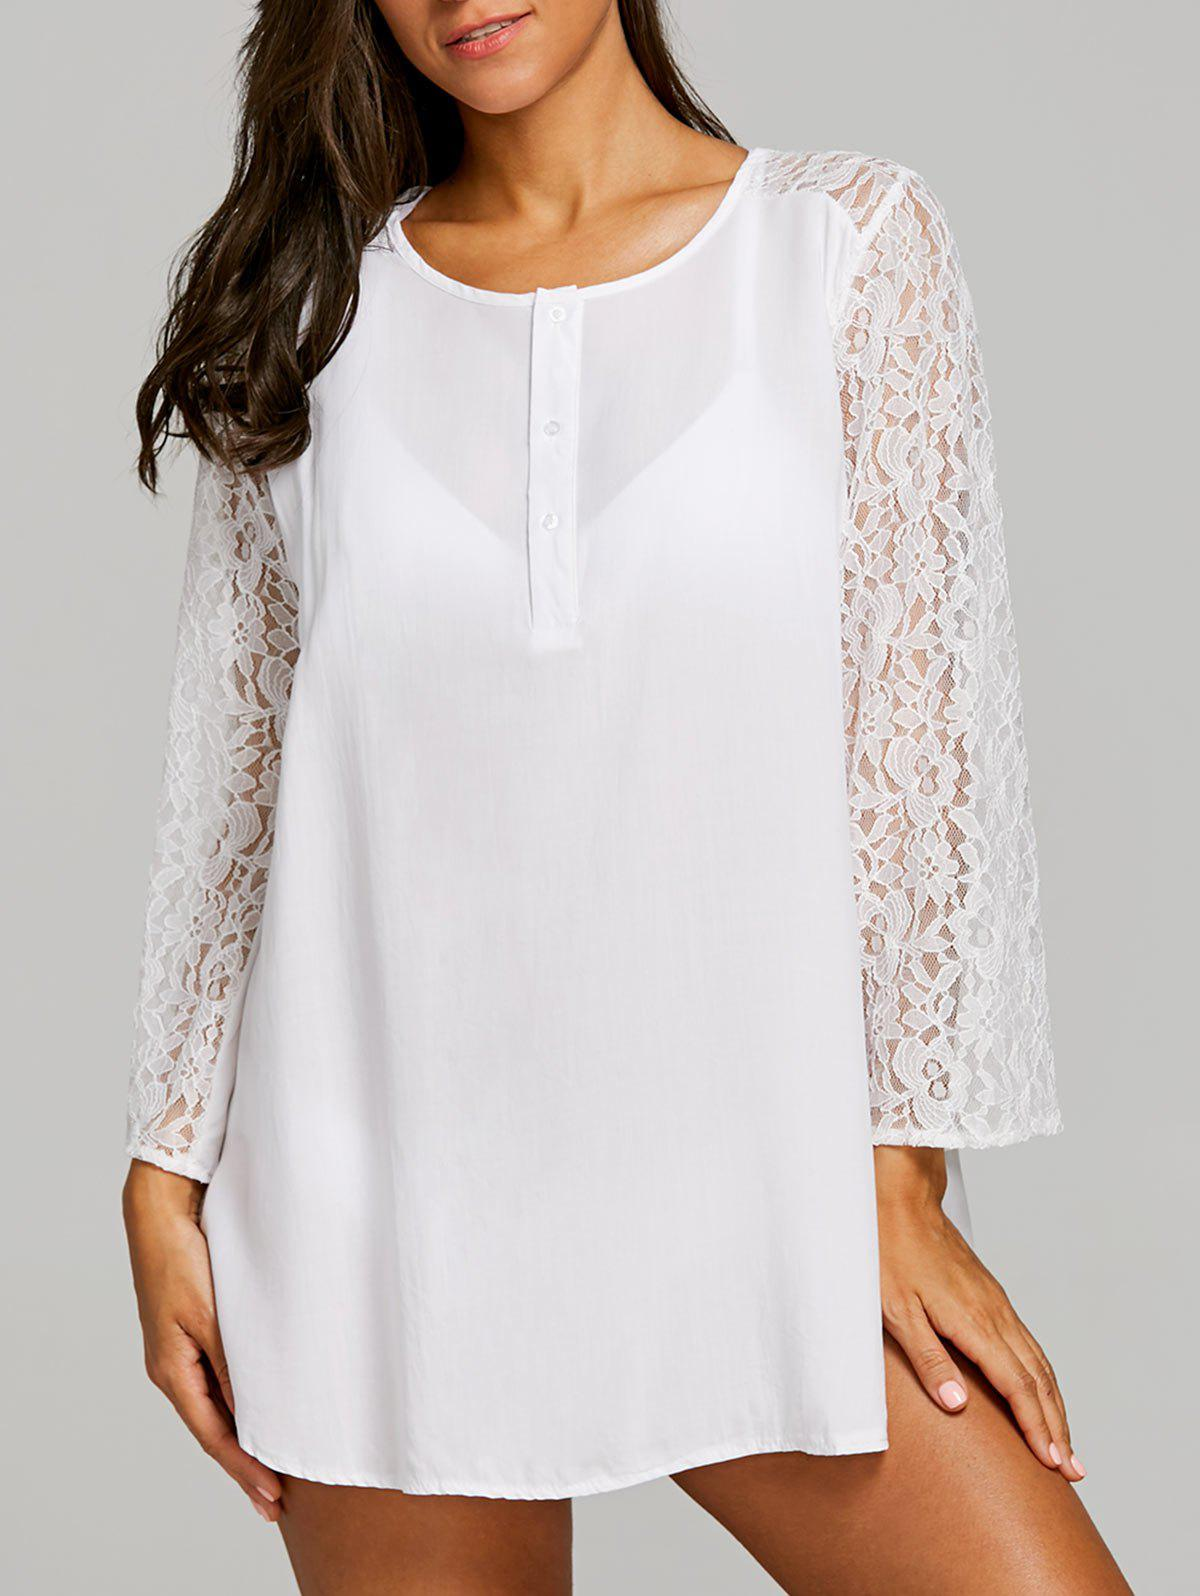 Lace Panel Short Cover Up Dress - WHITE S